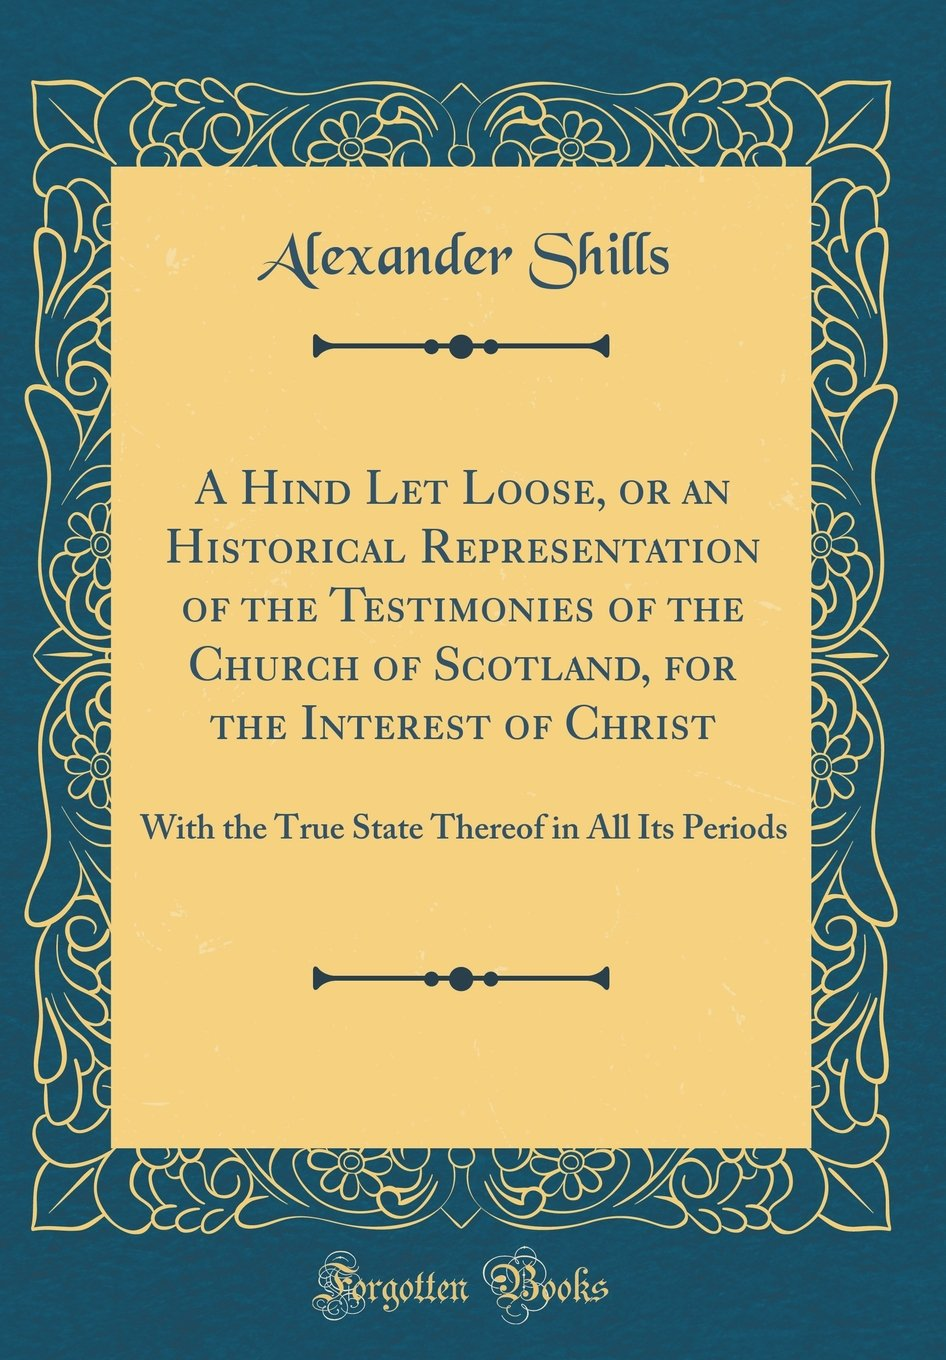 A Hind Let Loose, or an Historical Representation of the Testimonies of the Church of Scotland, for the Interest of Christ: With the True State Thereof in All Its Periods (Classic Reprint) PDF ePub book